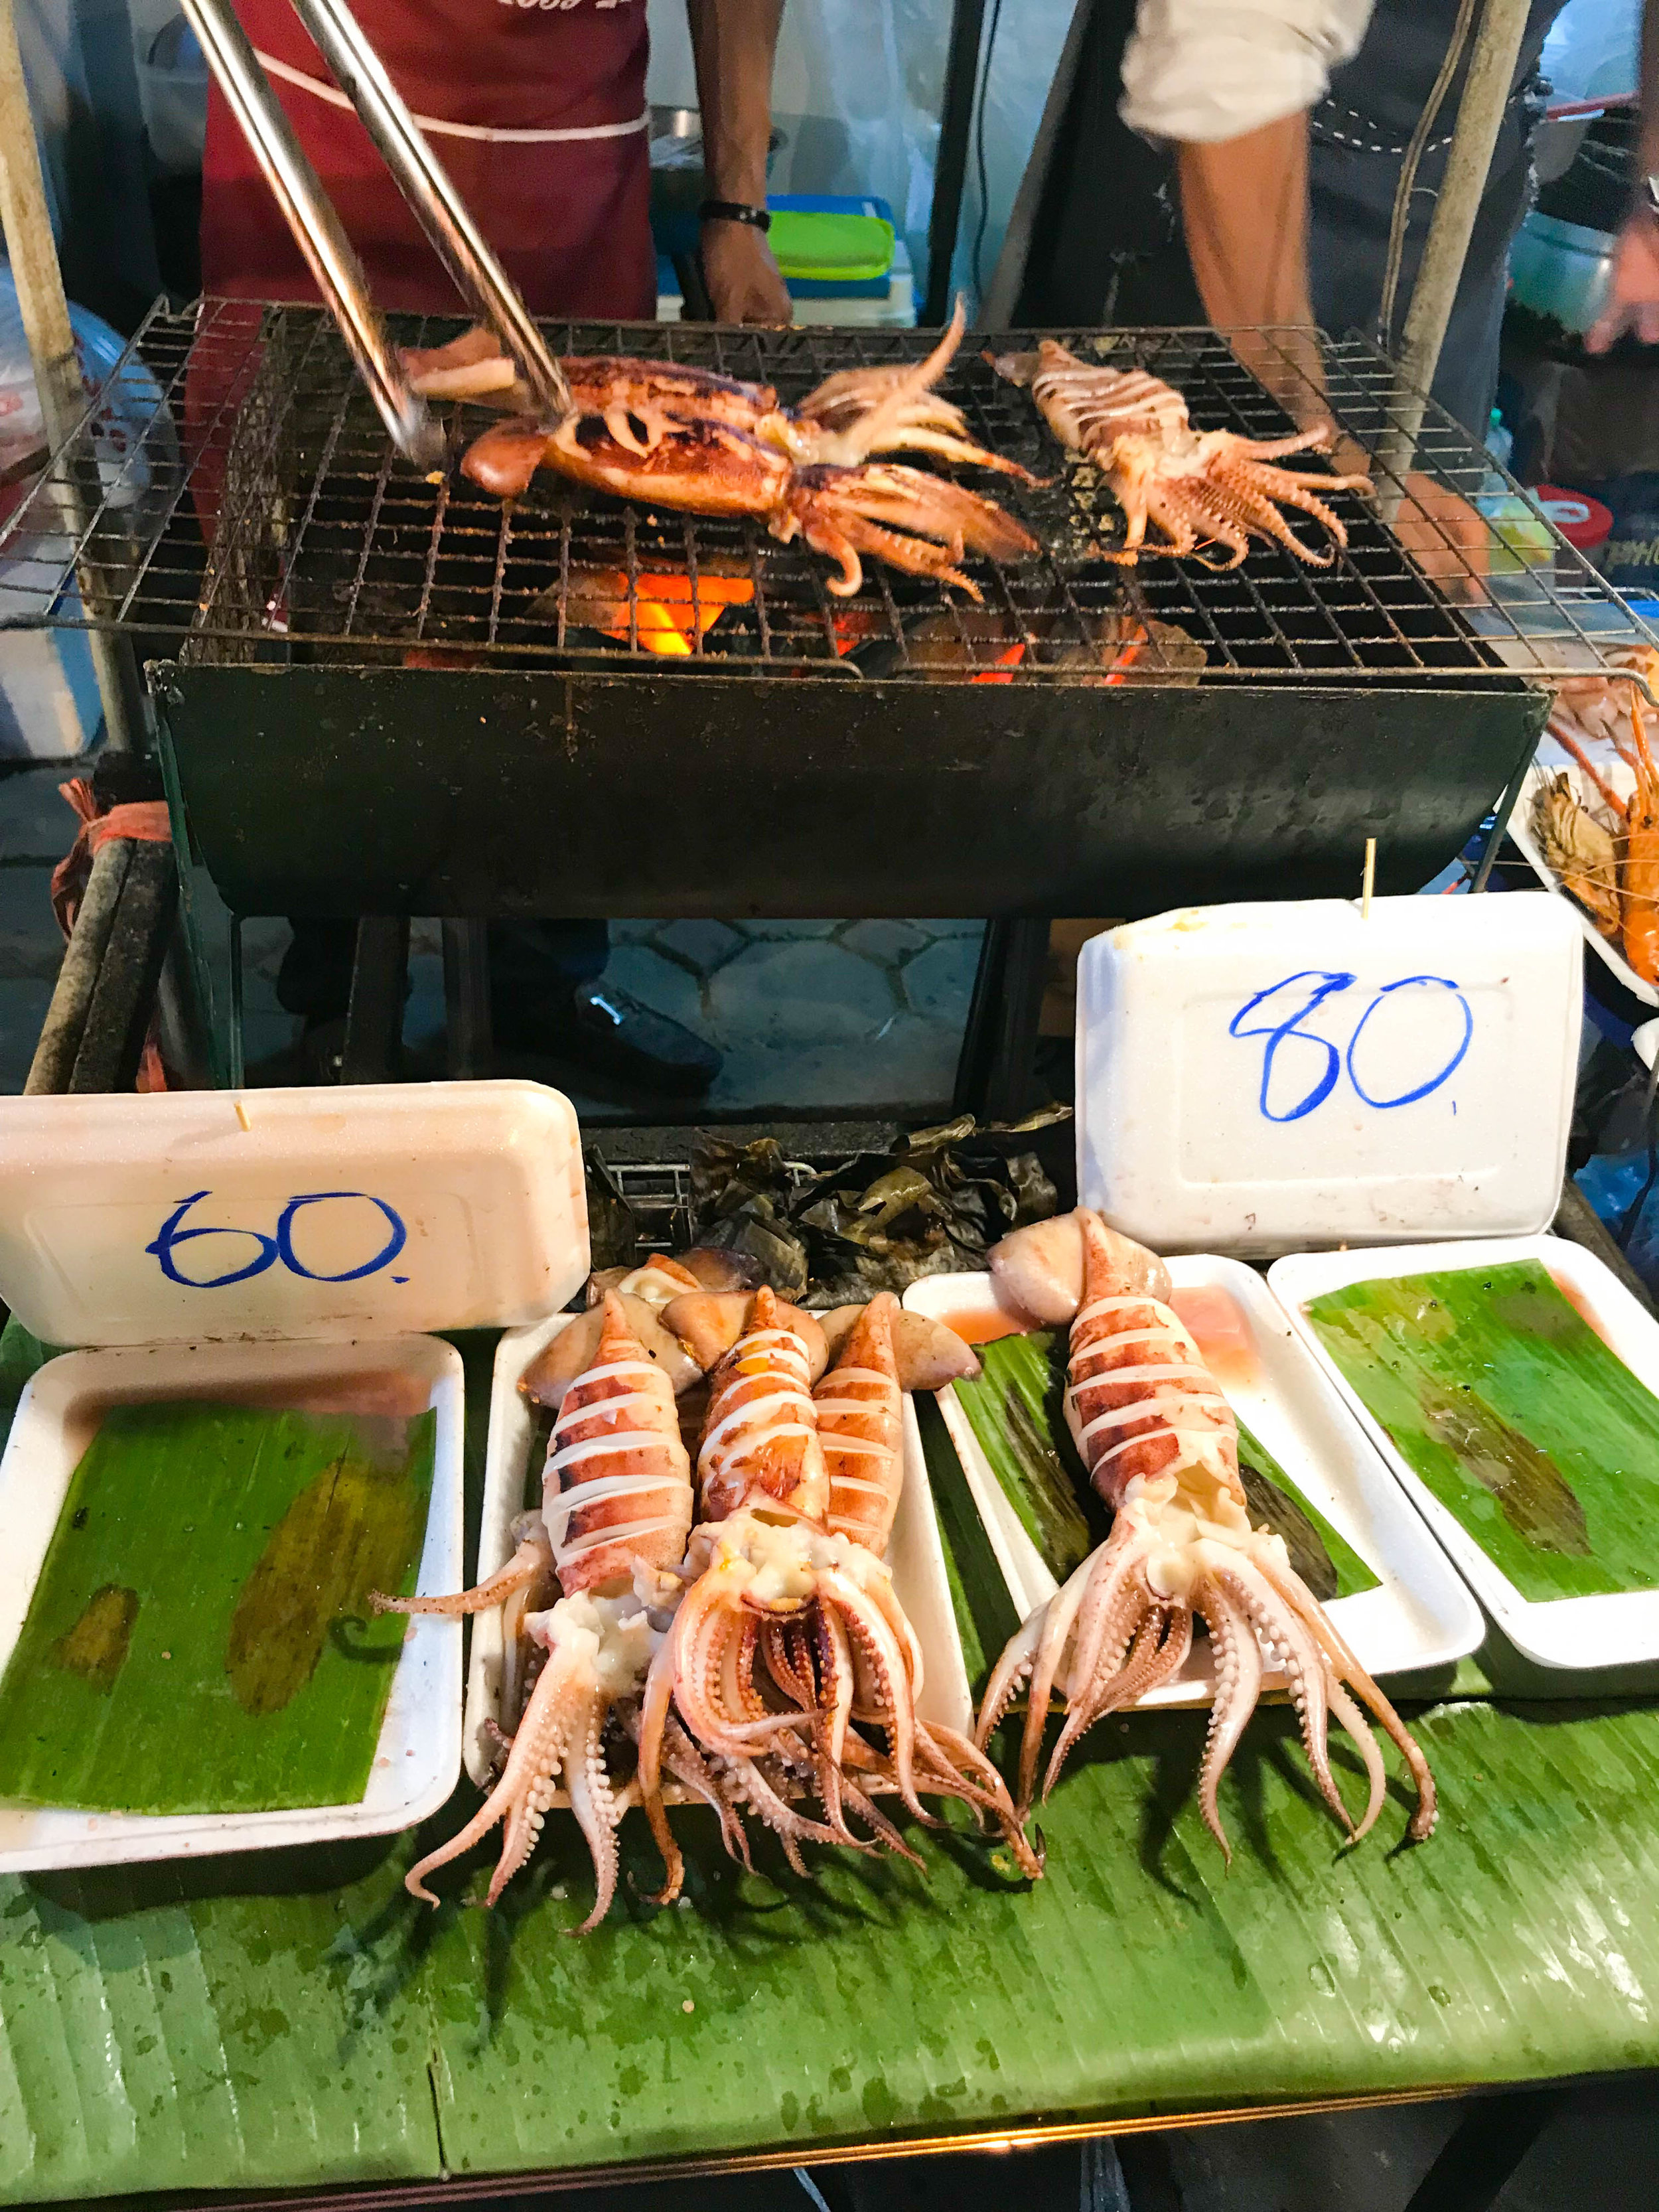 Thailand - Chiang Mai - New Years Eve - Street market food - squid